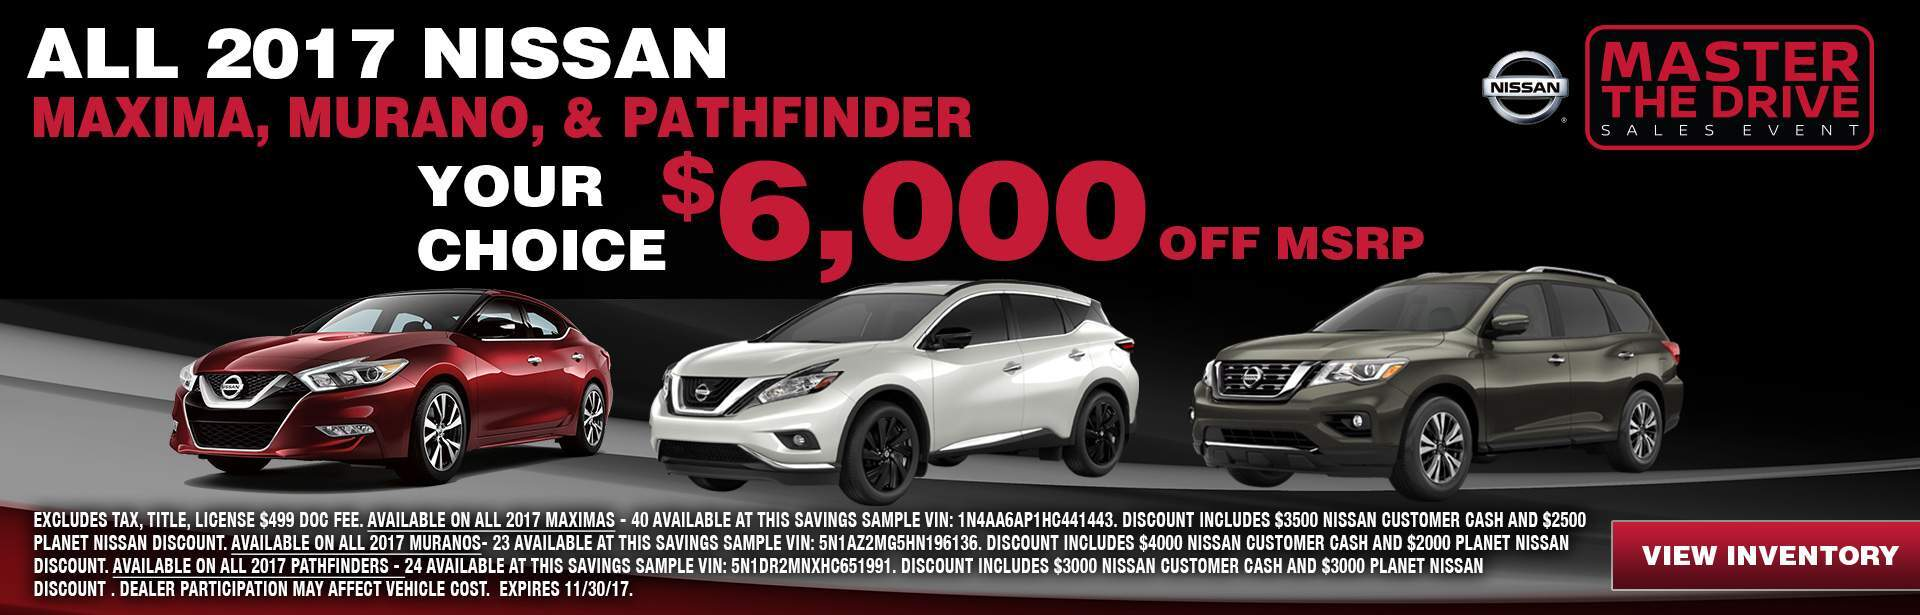 6000 off Nissan